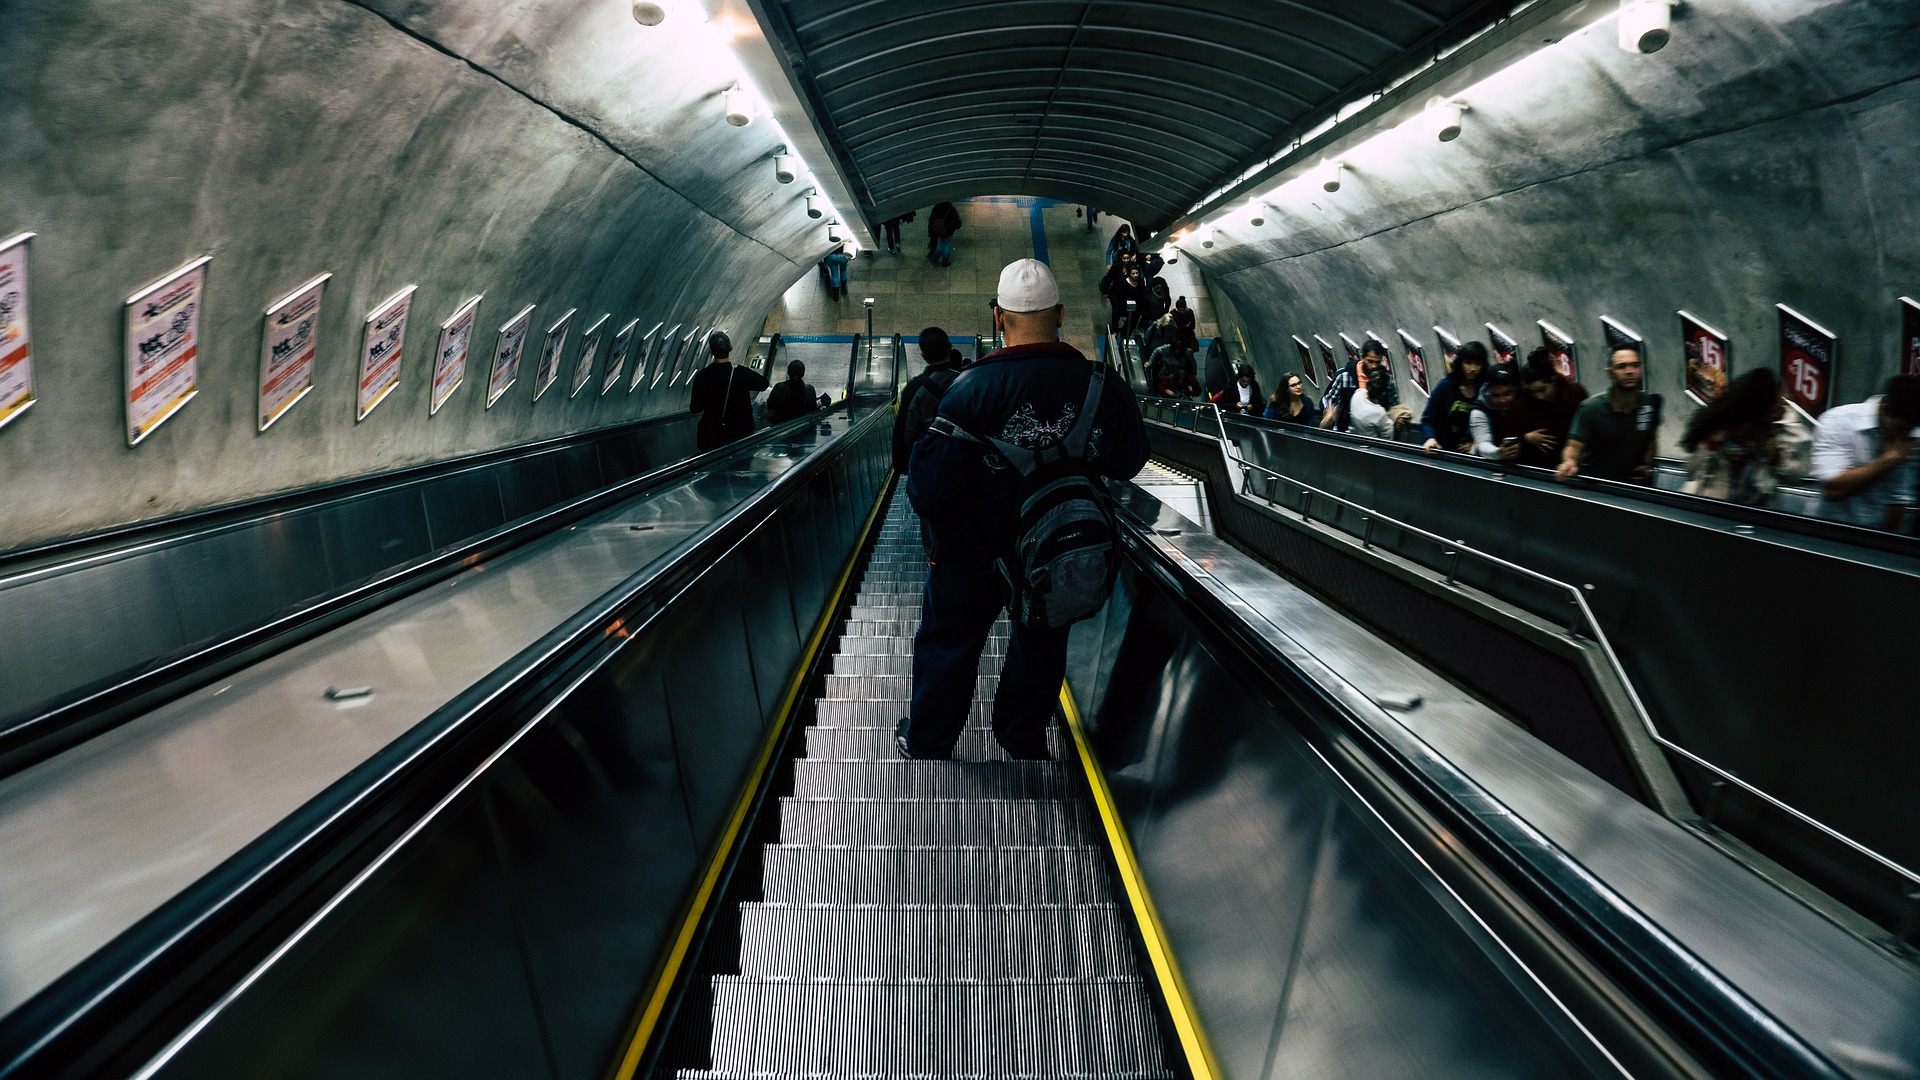 This is not a Hungarian escalator. Hungarian escalators are far more terrifying.